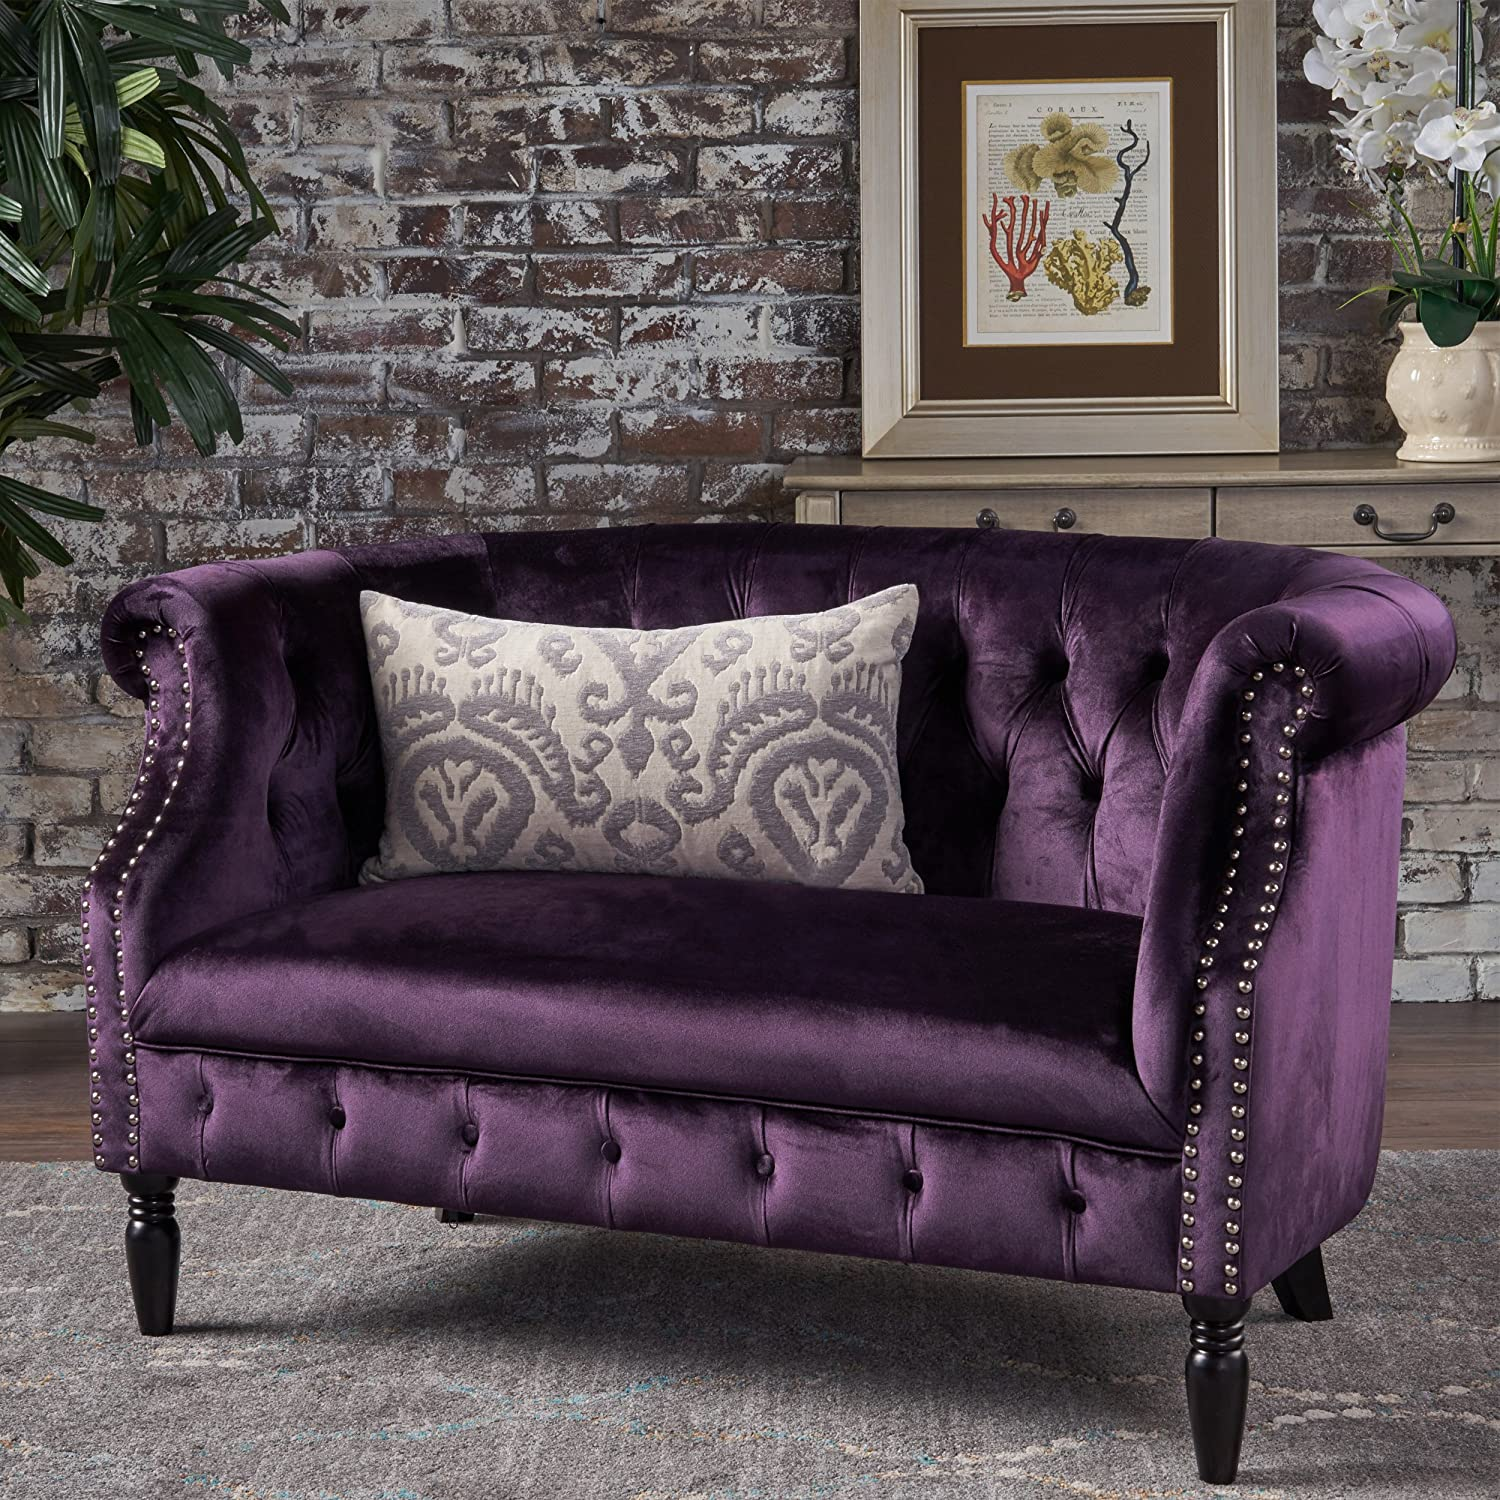 Christopher Knight Home 302212 Melaina BlackBerry Tufted Rolled Arm Velvet Chesterfield Loveseat Couch